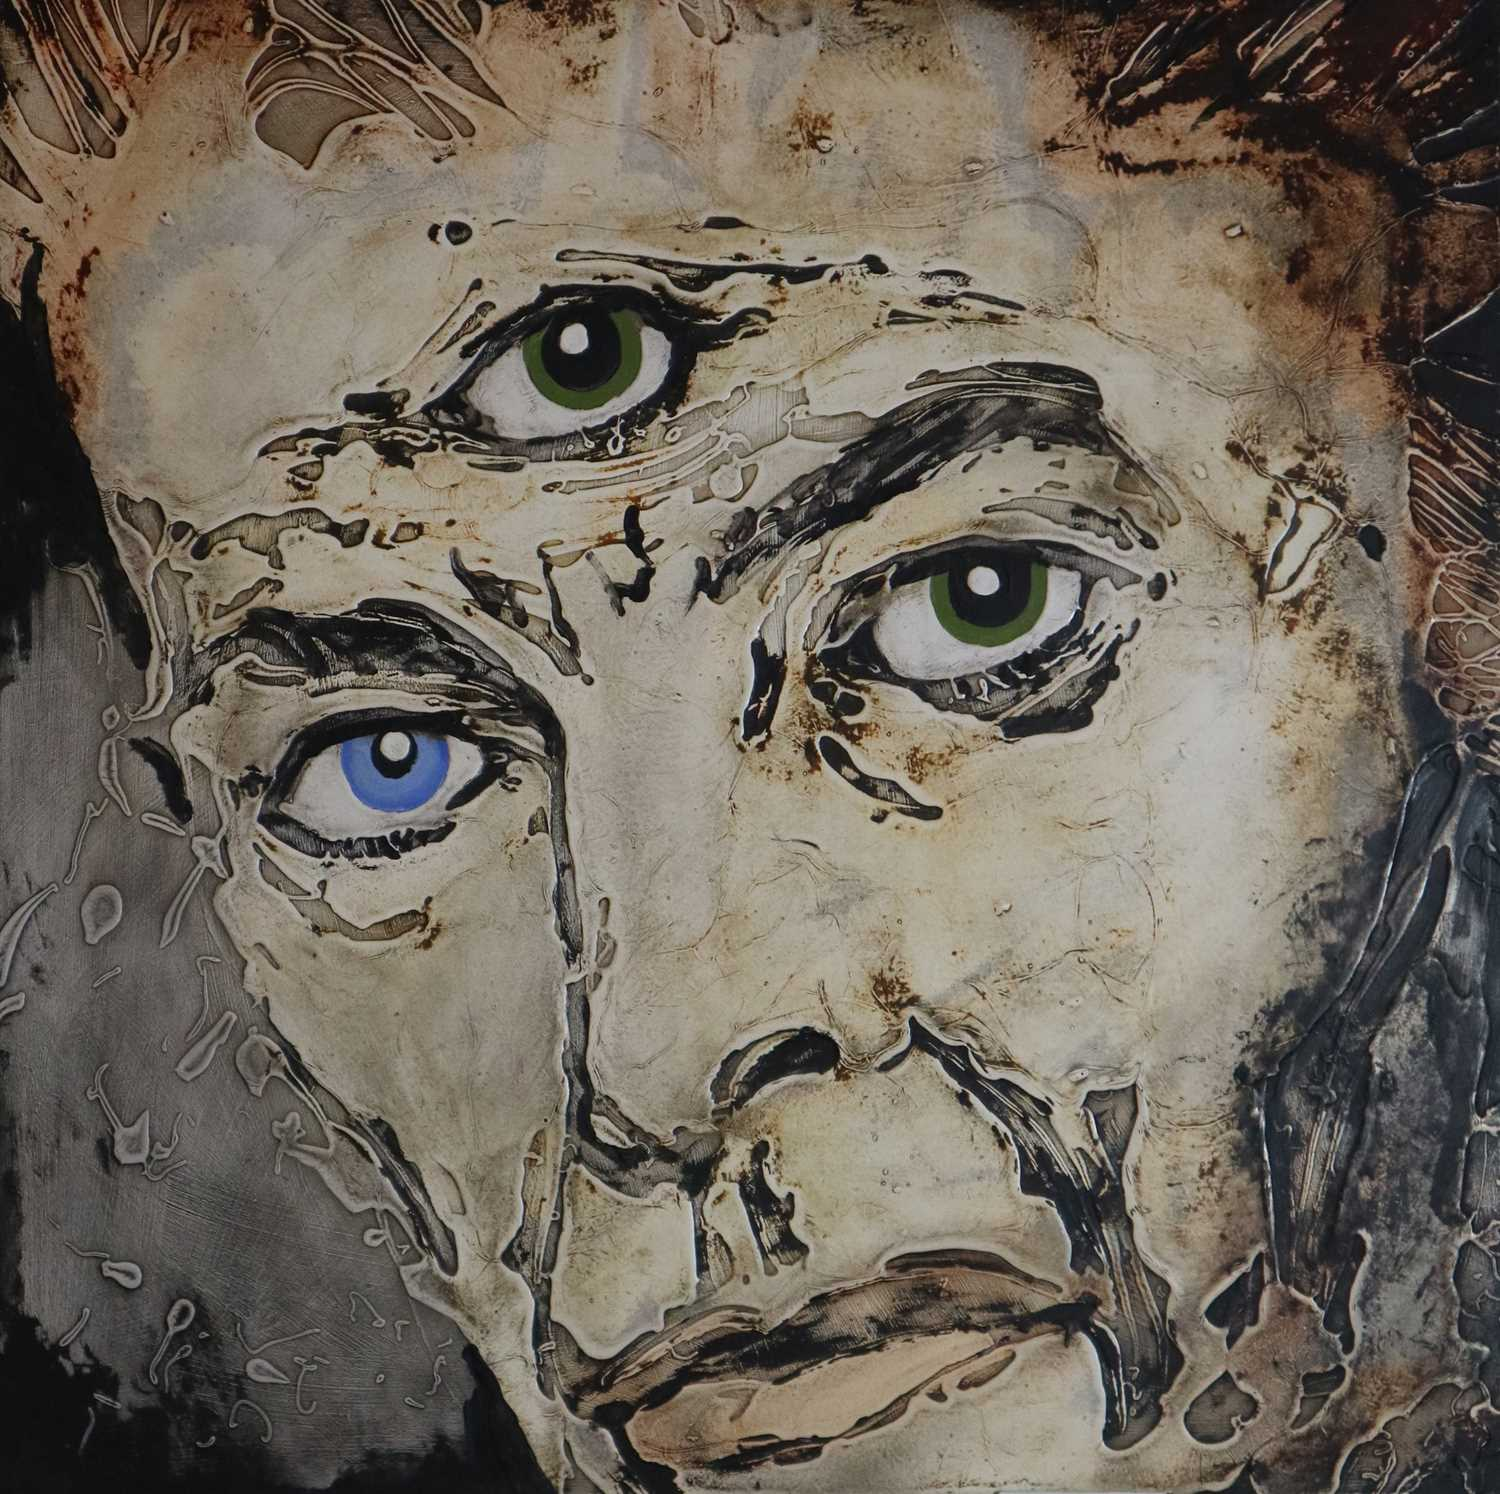 Edward Bell (British Contemporary) David Bowie with a Third Eye - Image 5 of 6